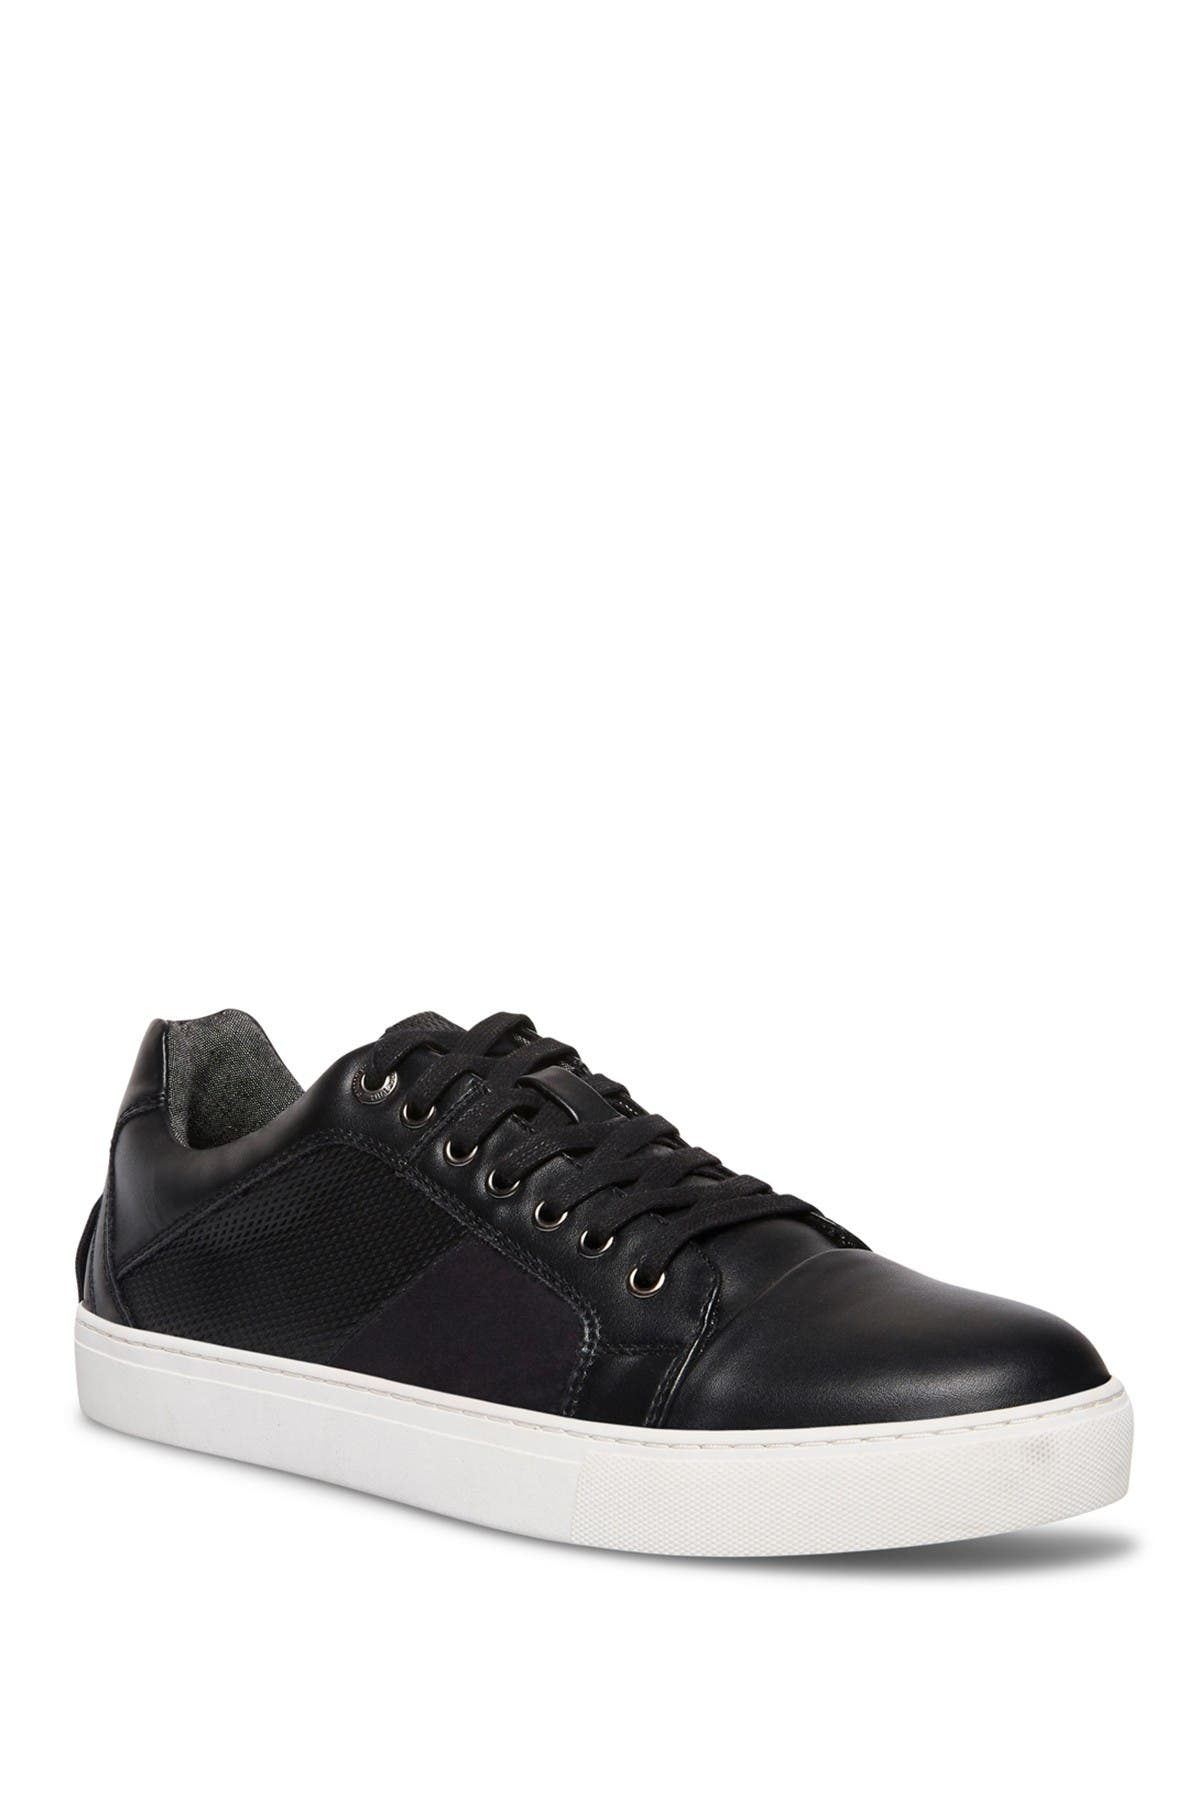 Image of Madden P-Yolt Leather Sneaker